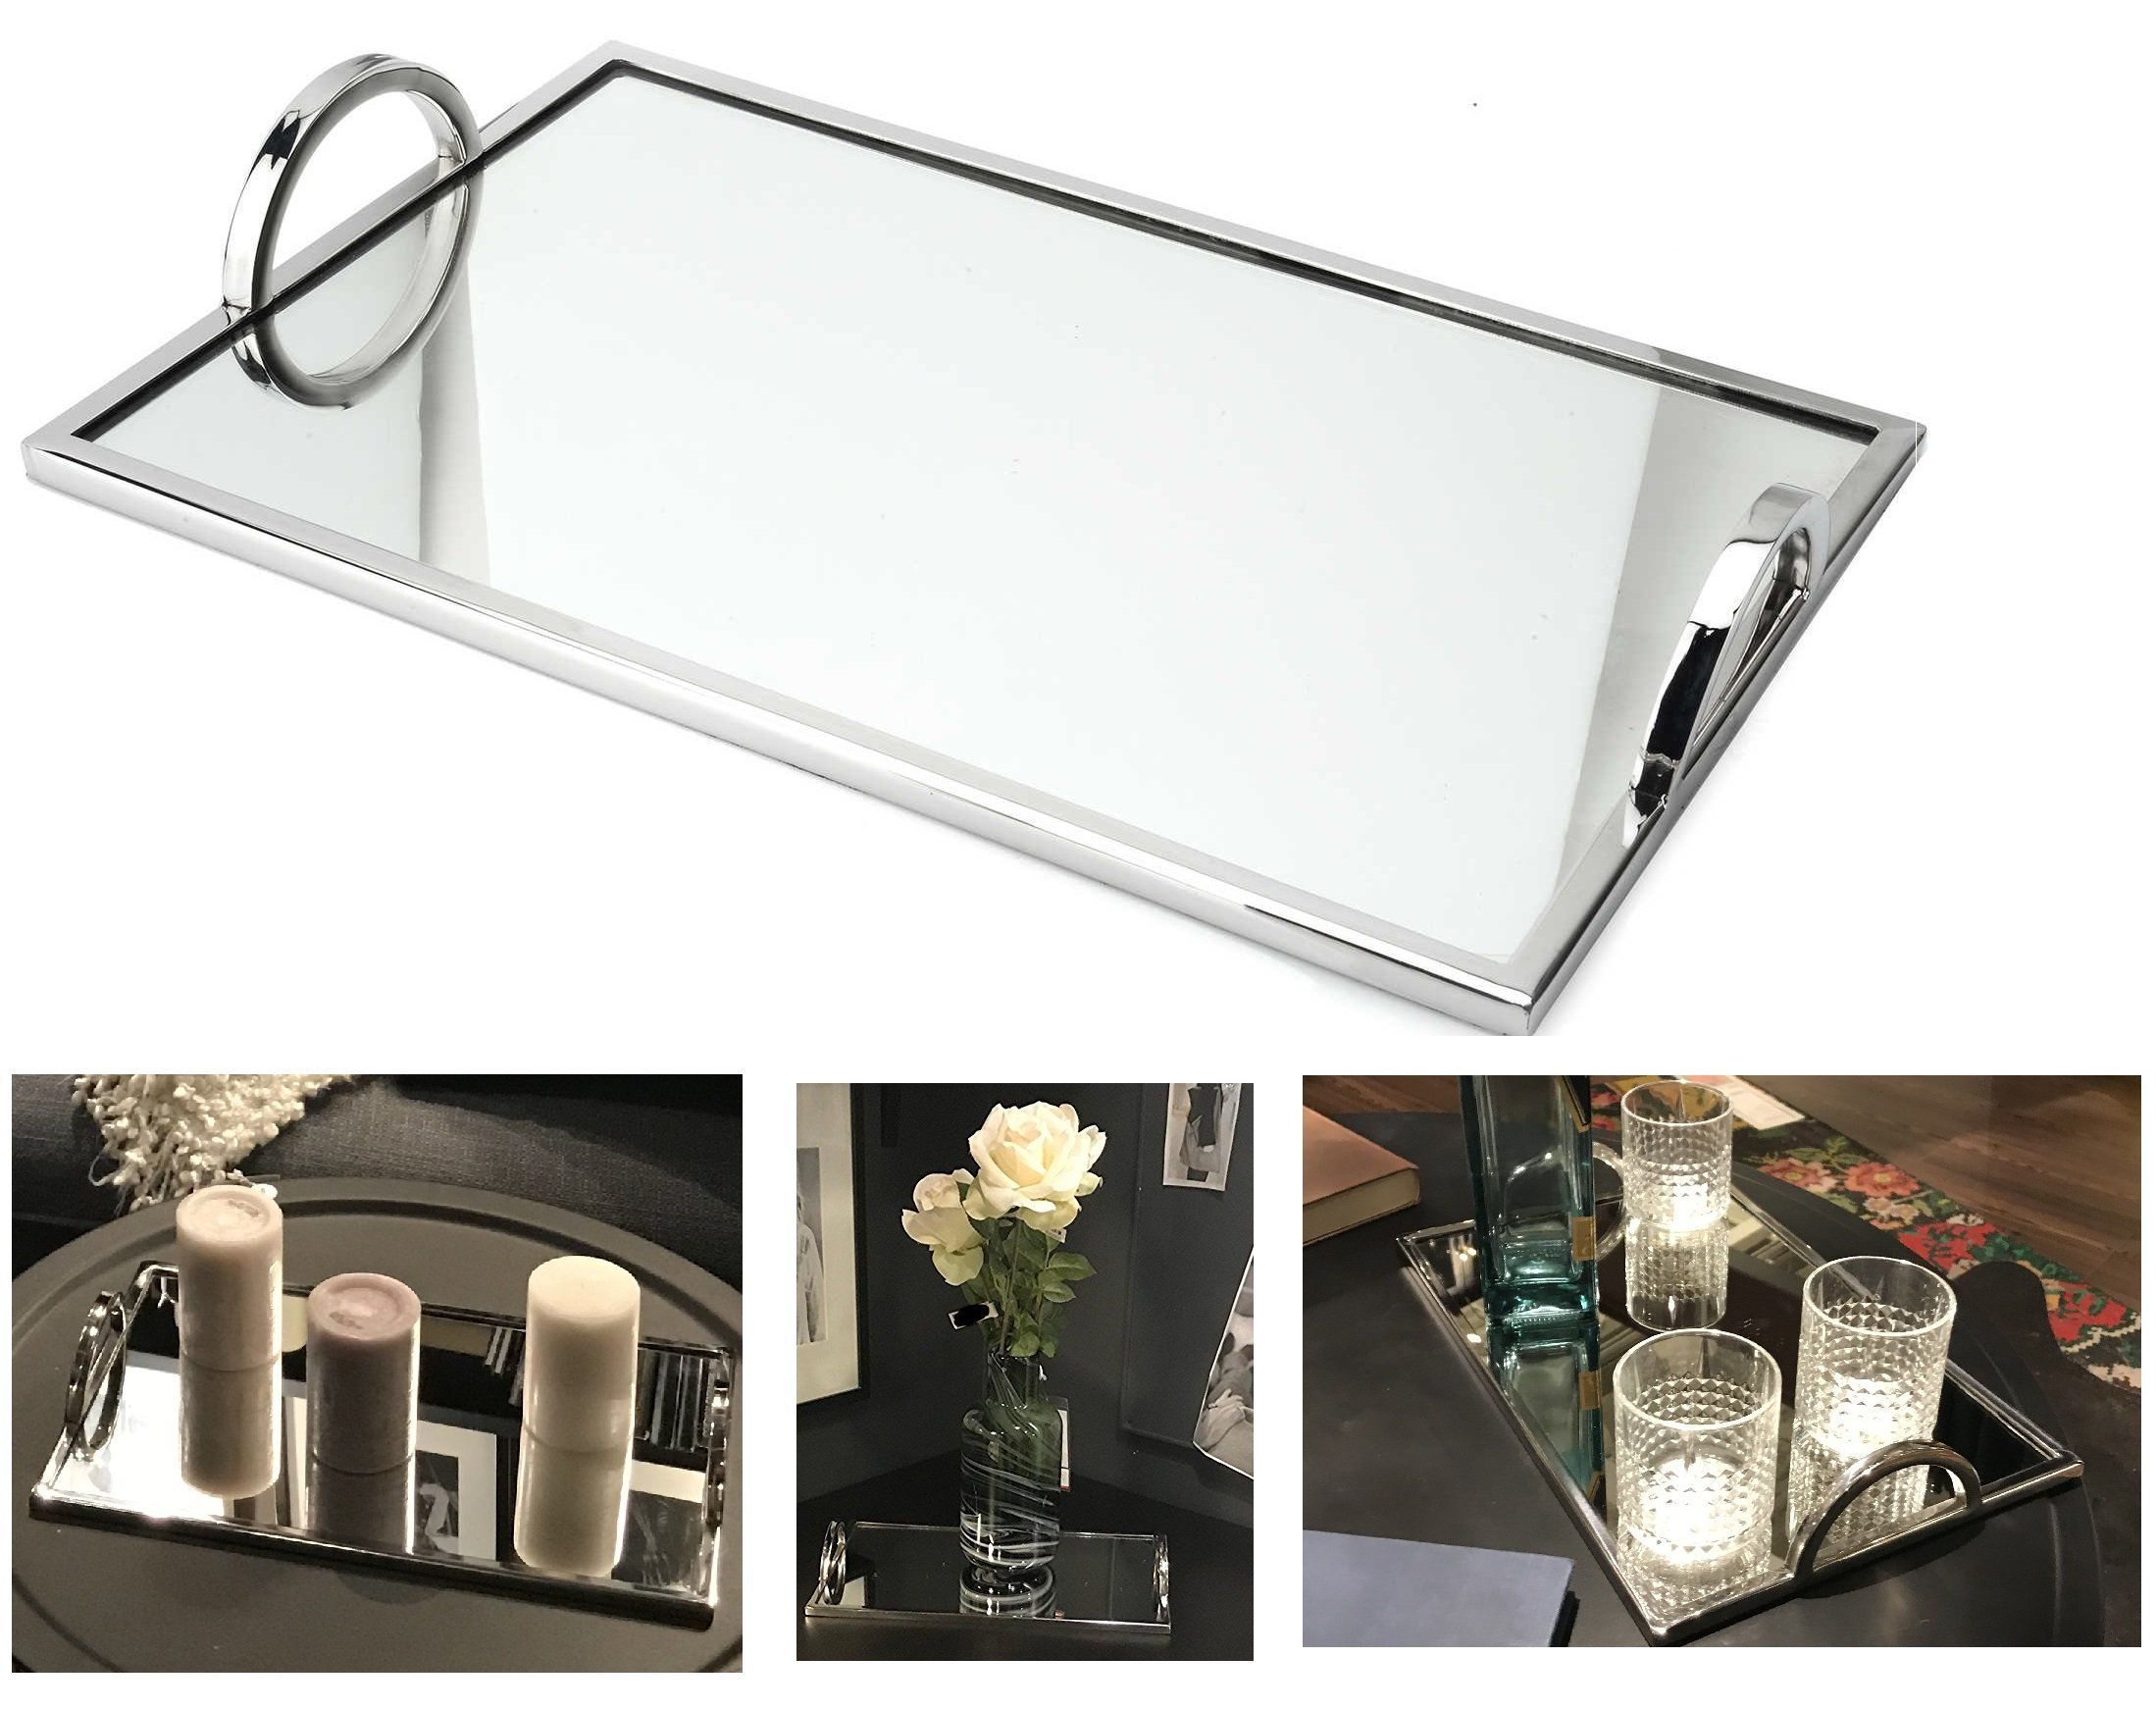 Elegant Silver Mirror Tray – With Chrome Edging and Handles – Rectangle Vanity Tray – Ideal For Ottoman, Coffee Table, Perfume Set, Living Room, Dining Room, Jewelry Tray, Whiskey Decanter Set 12 x 7'' by Le'raze